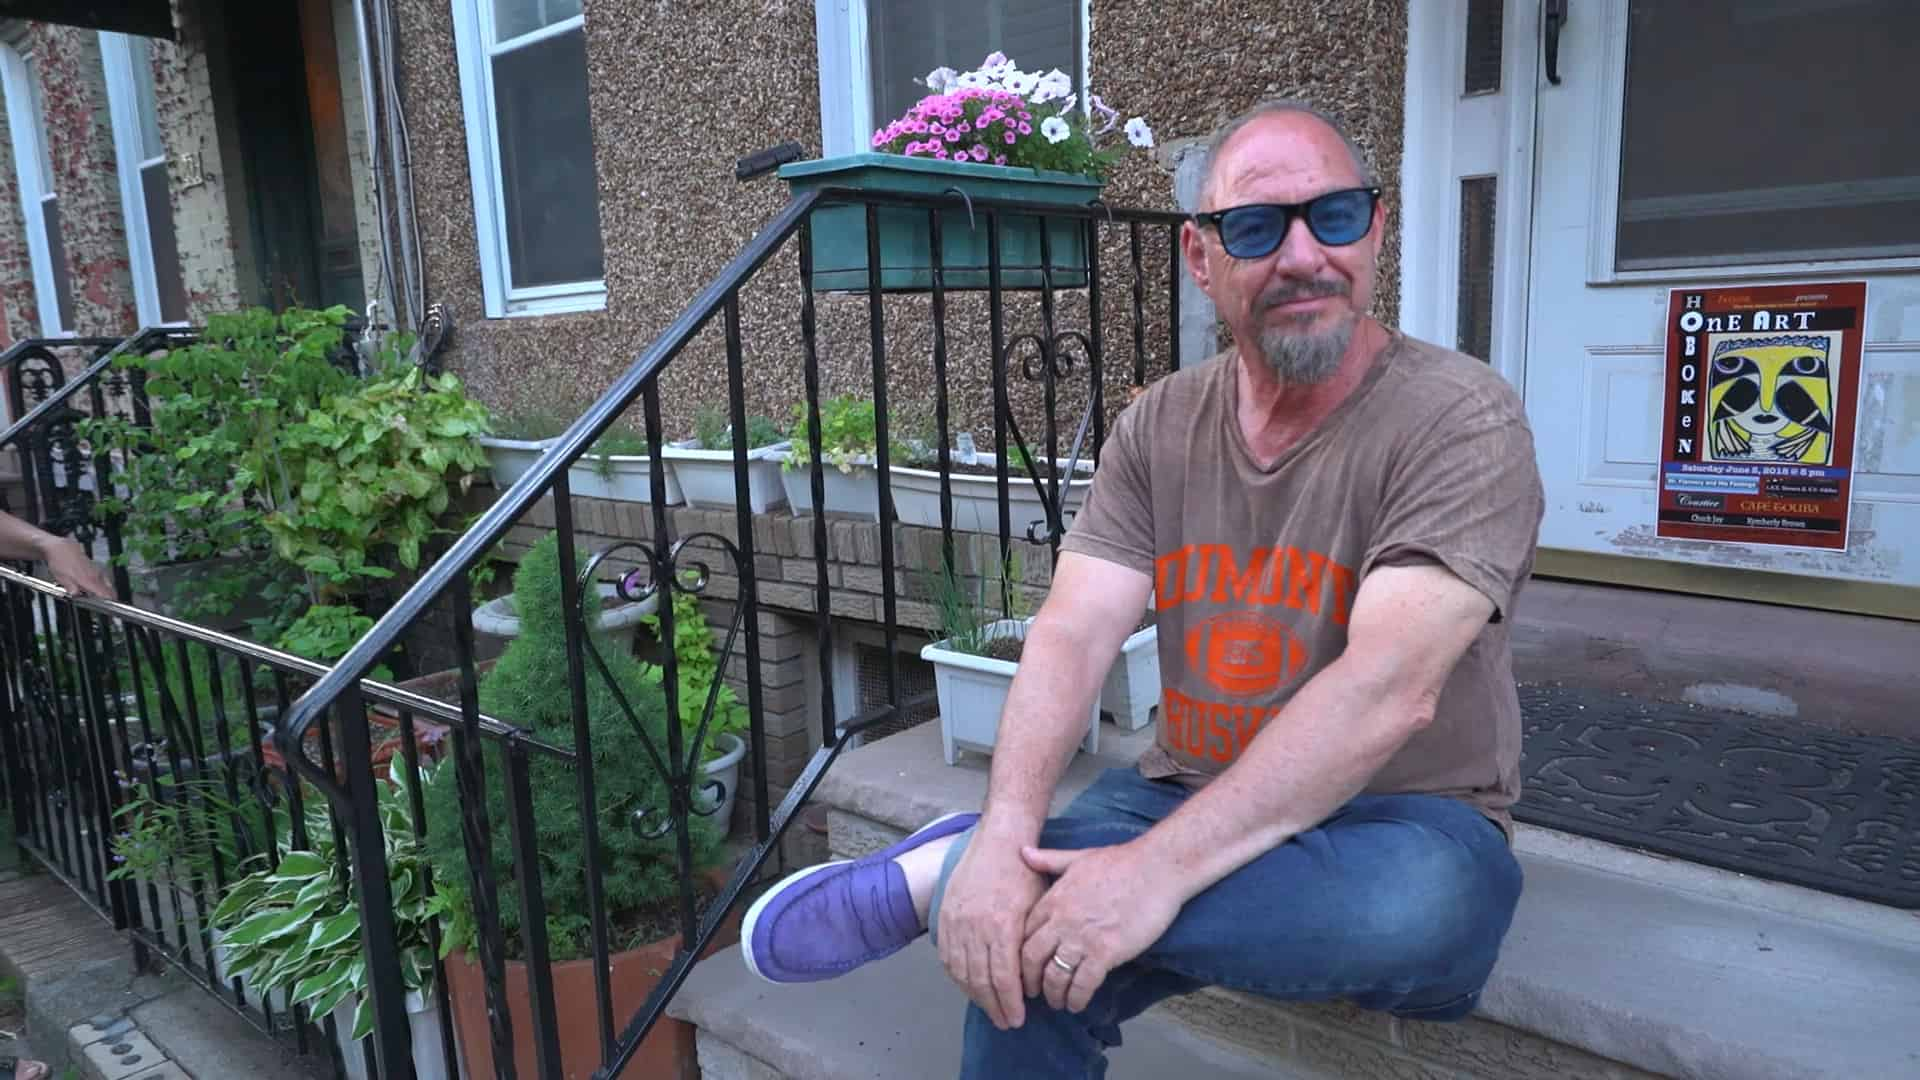 Poet Danny Shot at home in Hoboken